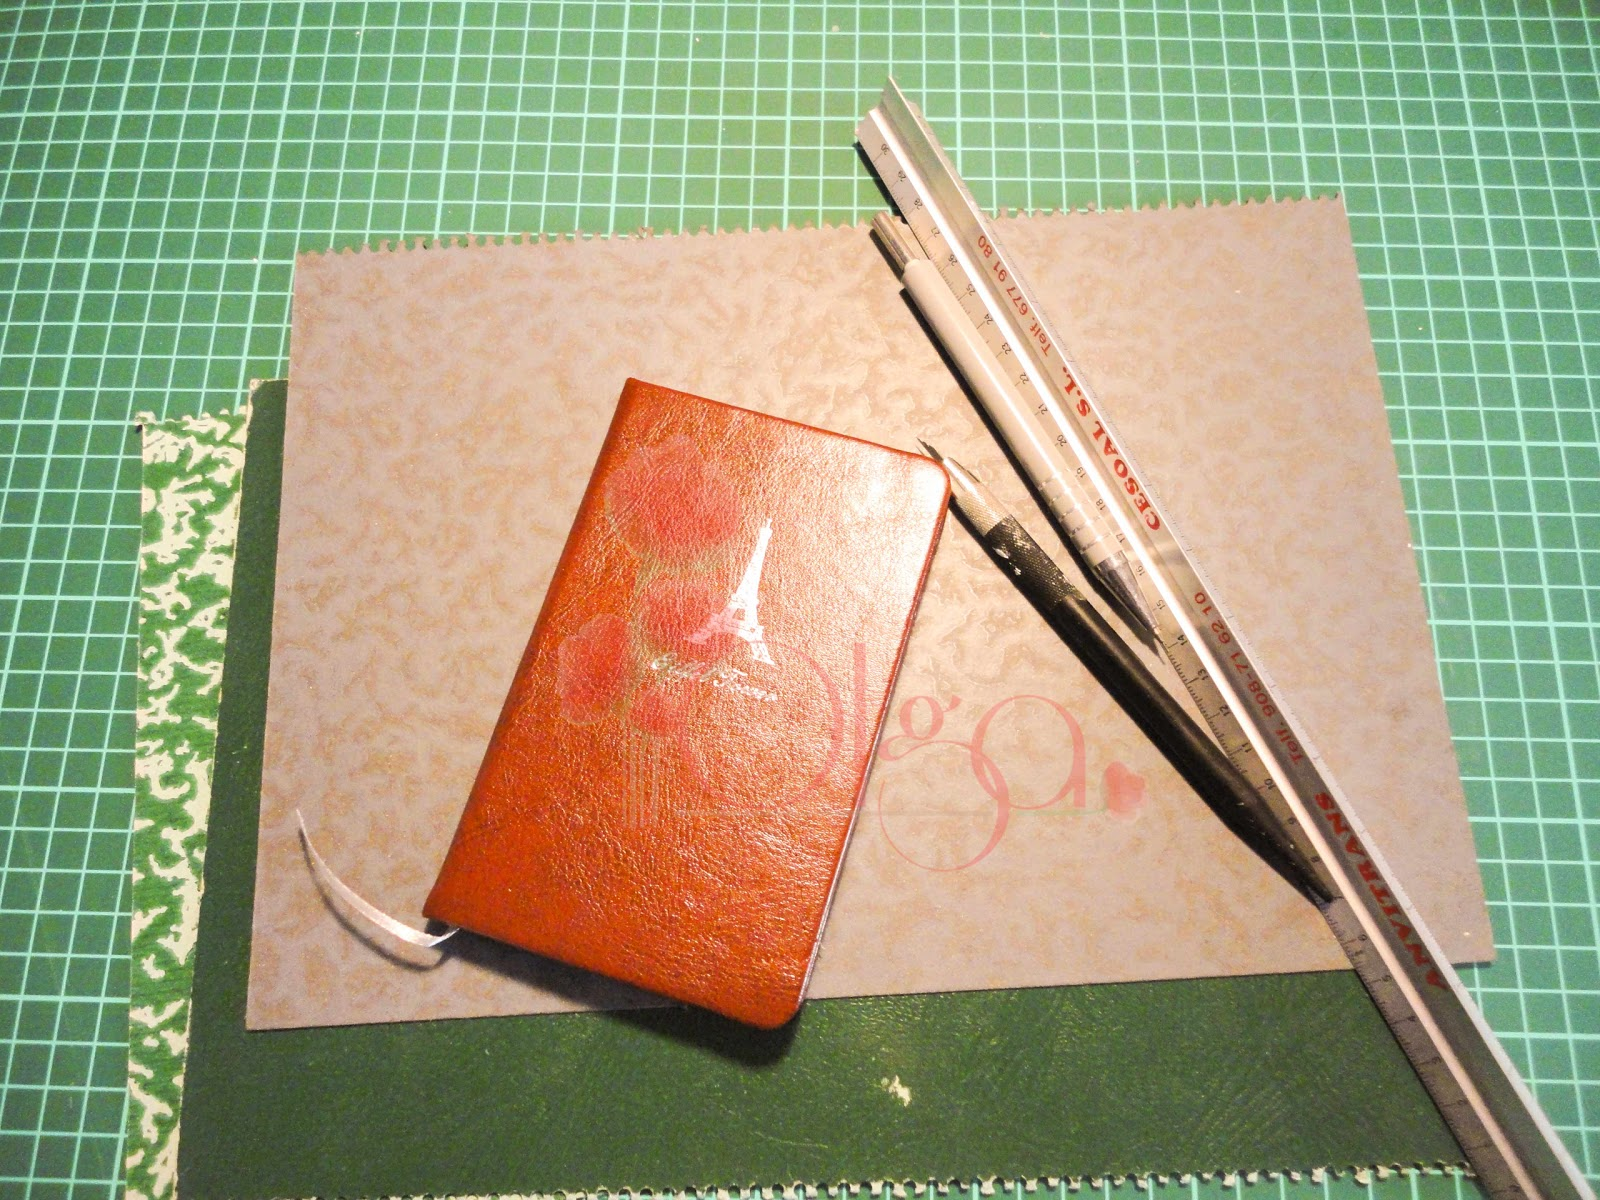 como-encuadernar-una-agenda-con-carton--how-to-bind-a-journal-with-cardboard